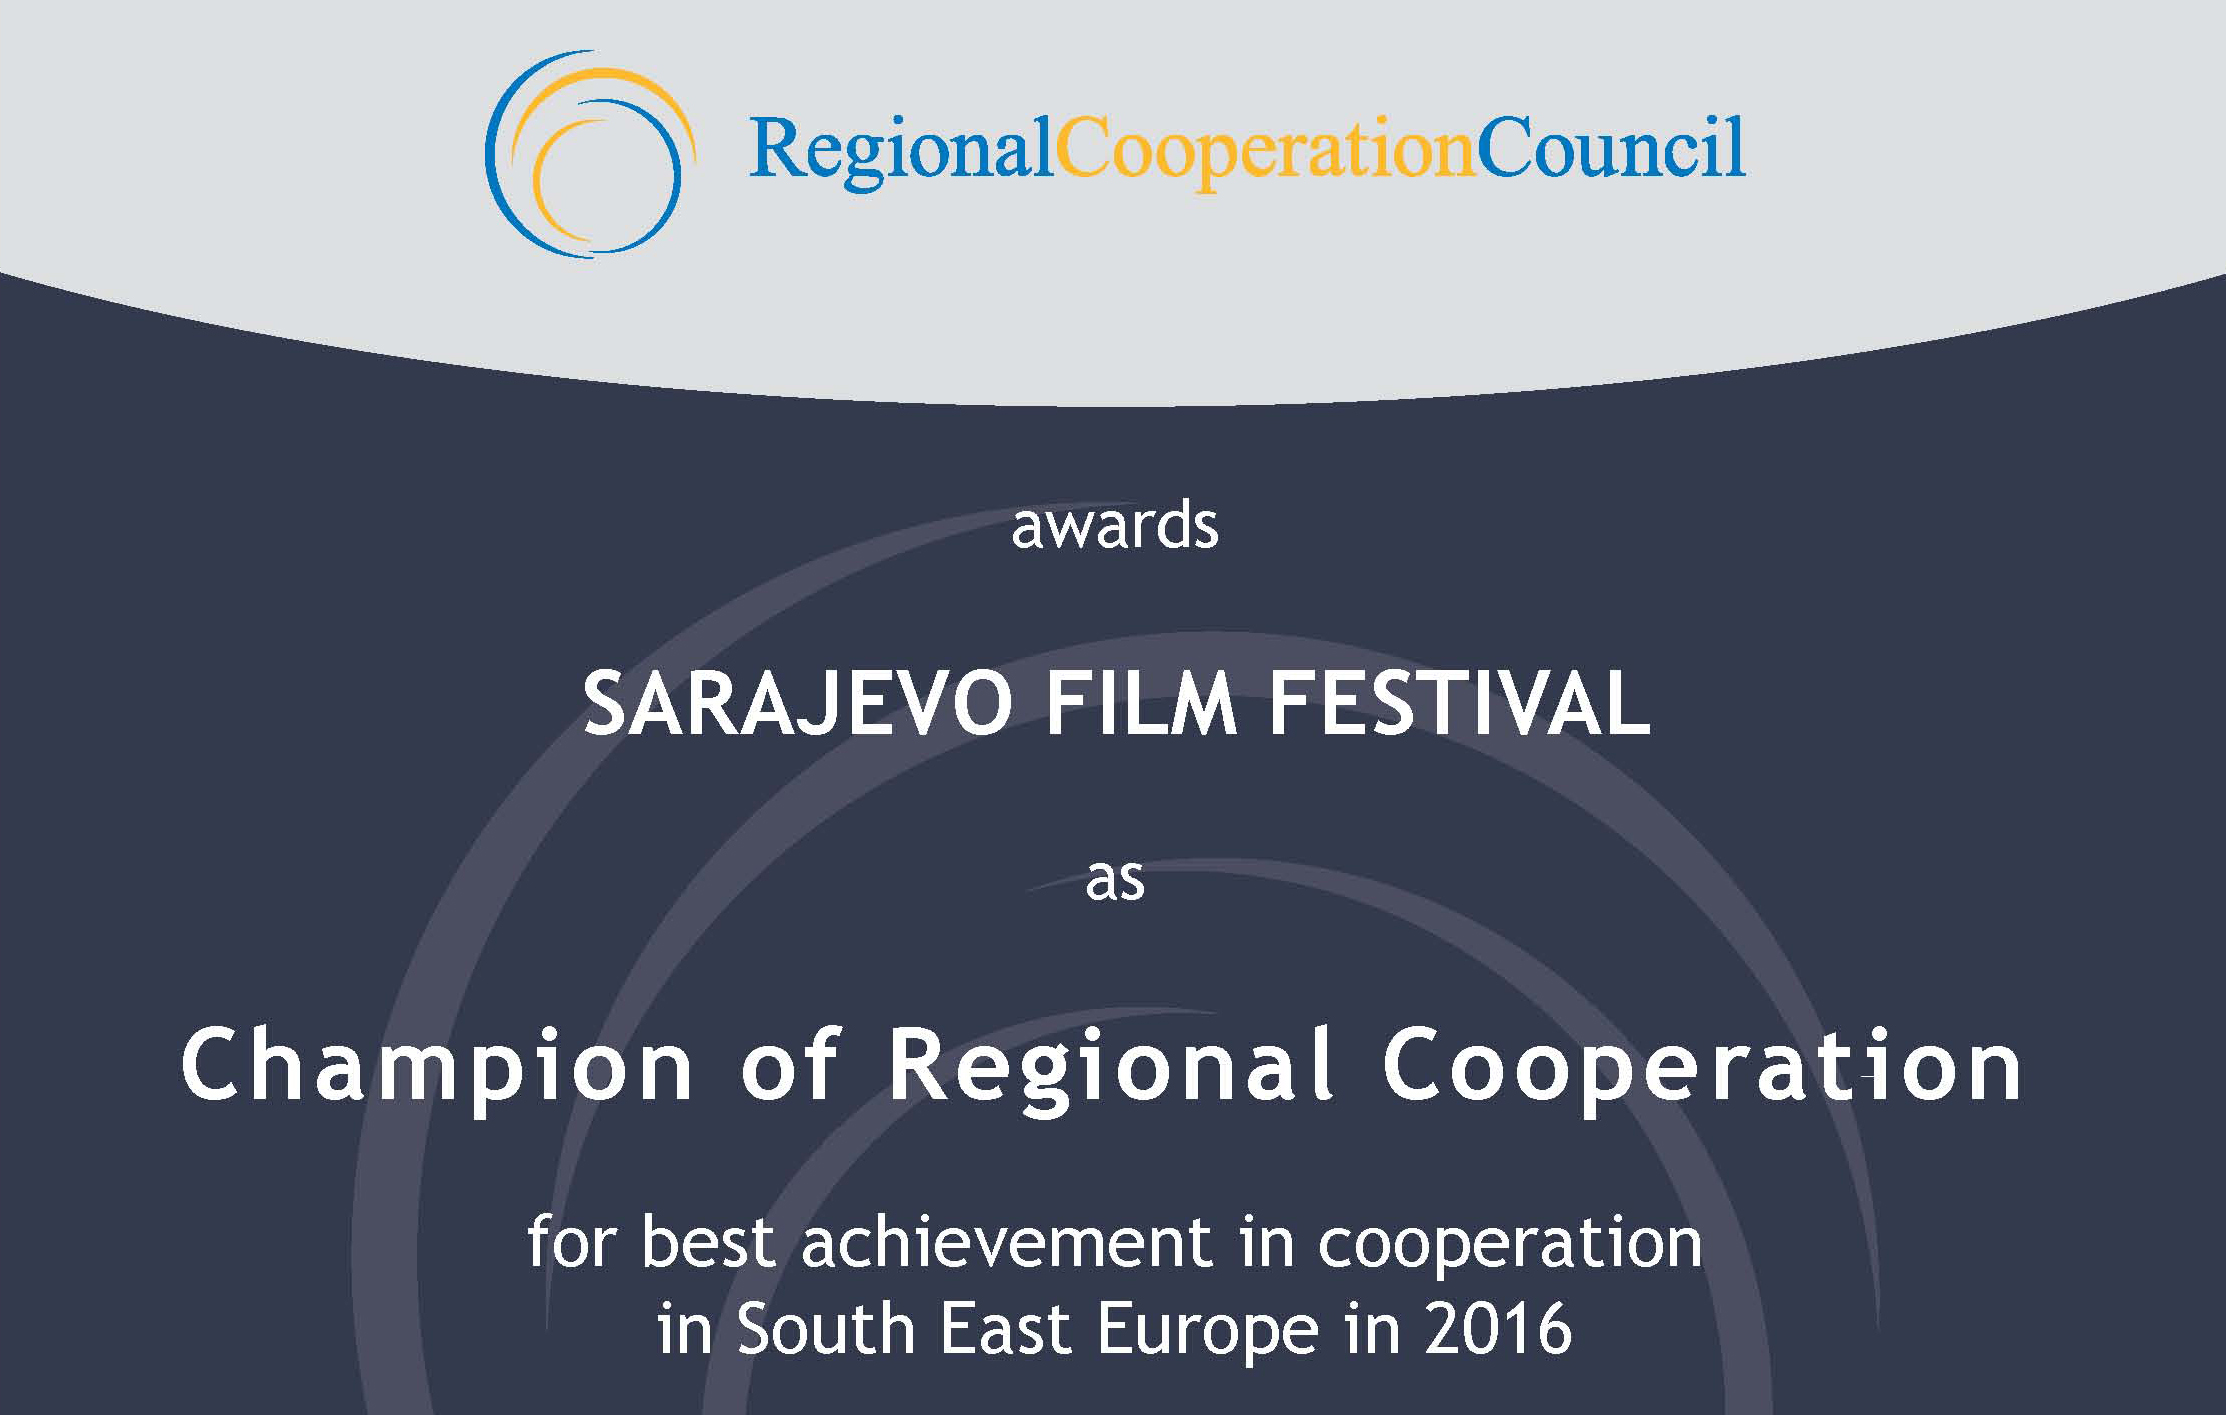 Champion of Regional Cooperation  for 2016